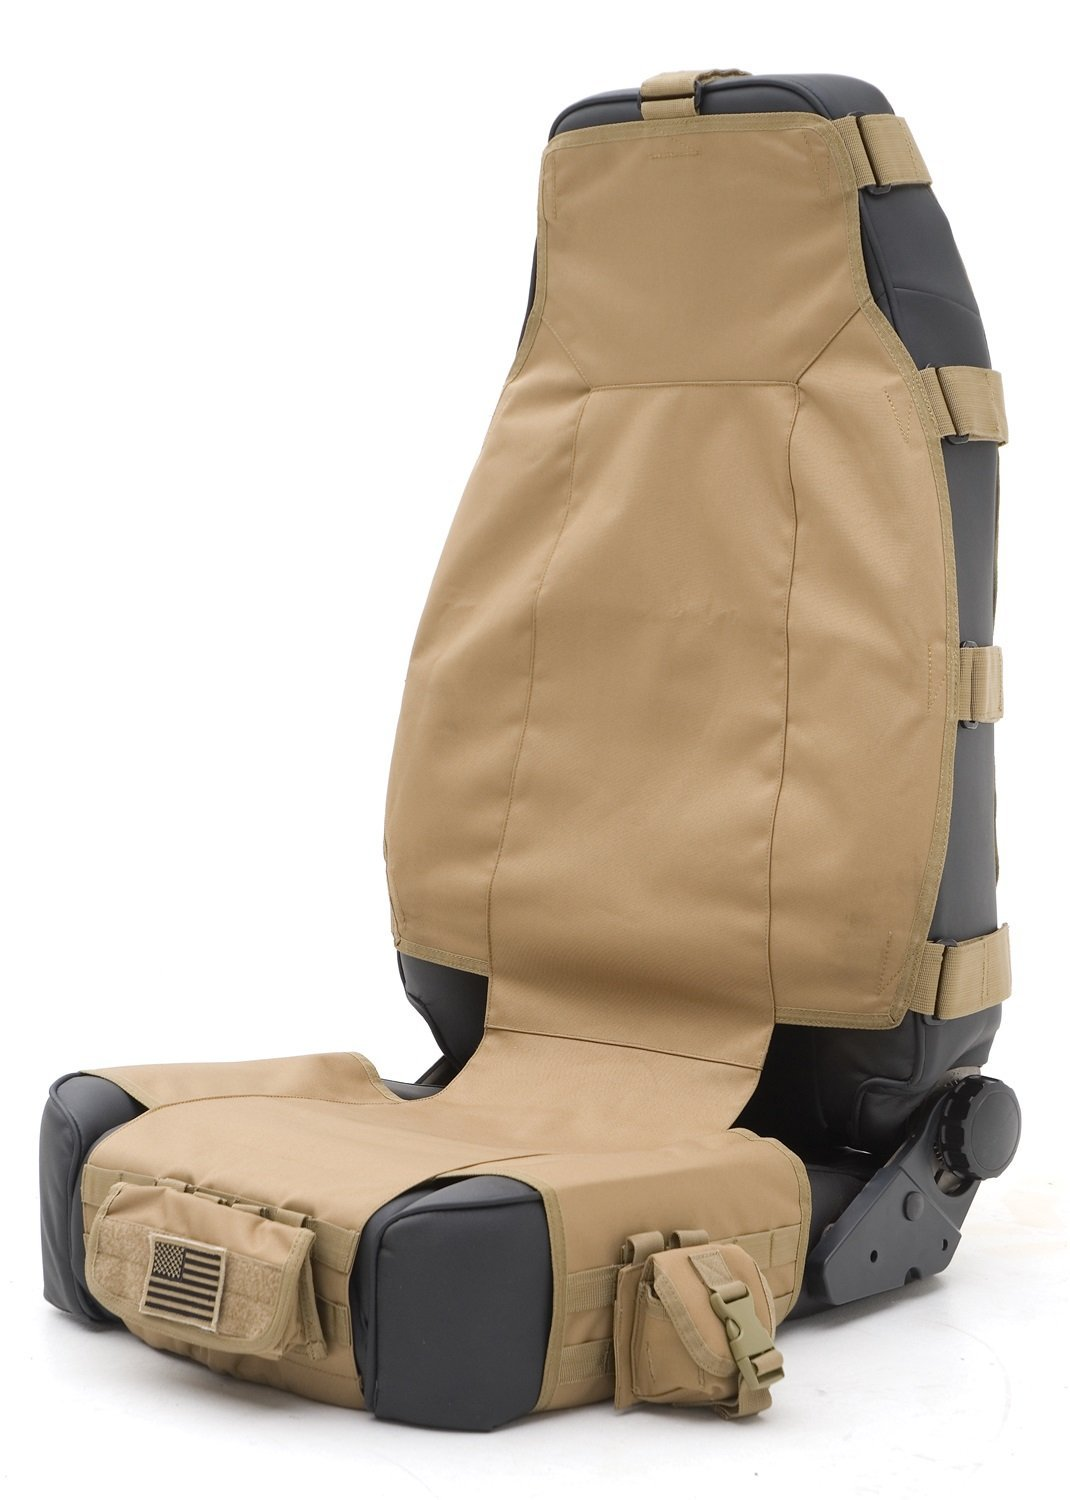 Jeep Seat Covers >> Tactical Seat Covers Will Breathe Some New Military-Flavored Life Into Your Old Beater | OhGizmo!